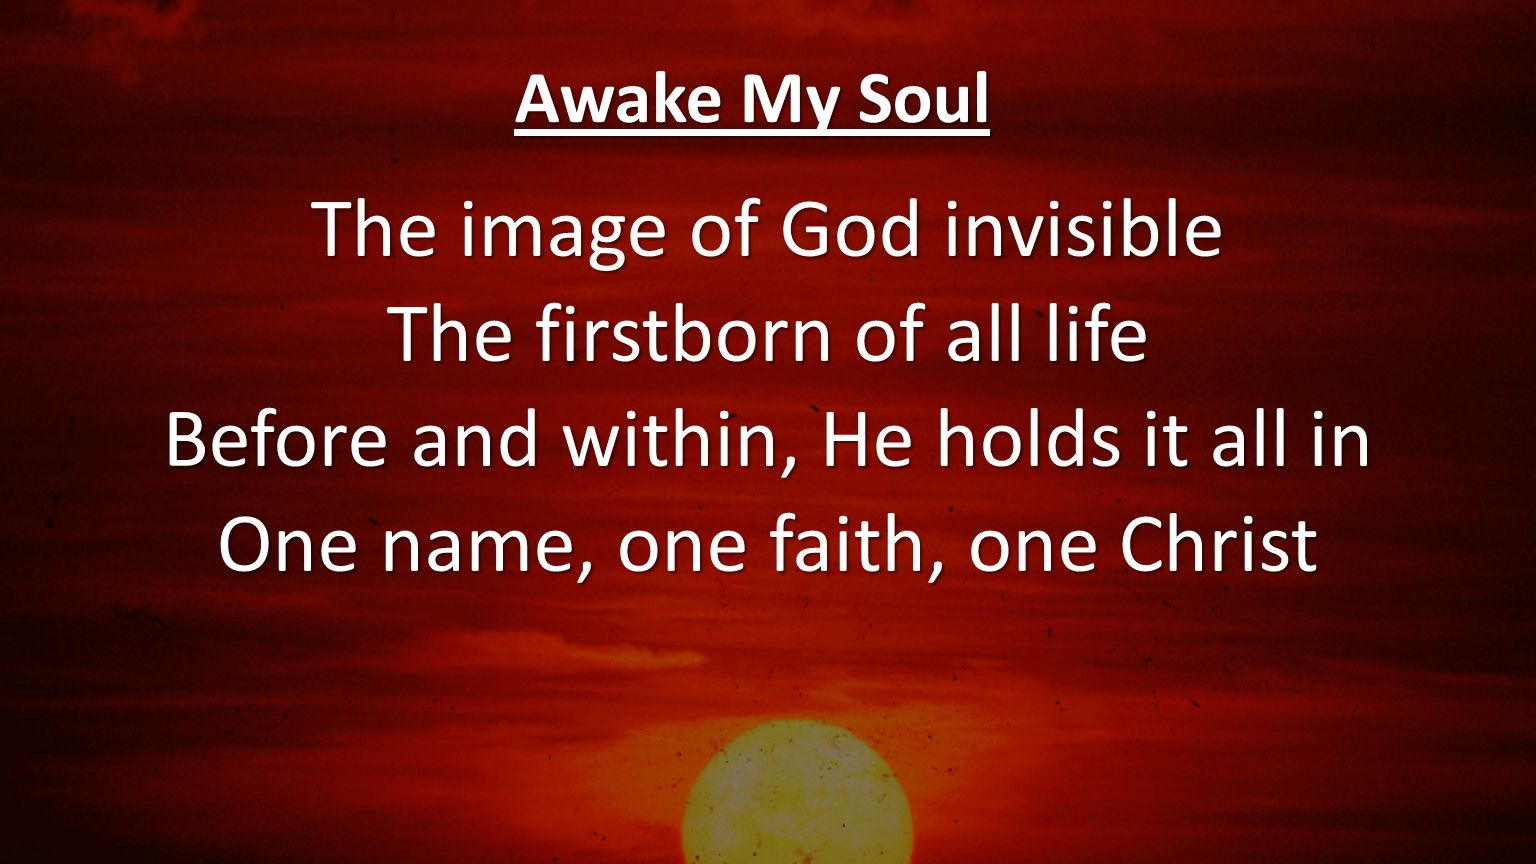 The image of God invisible The firstborn of all life